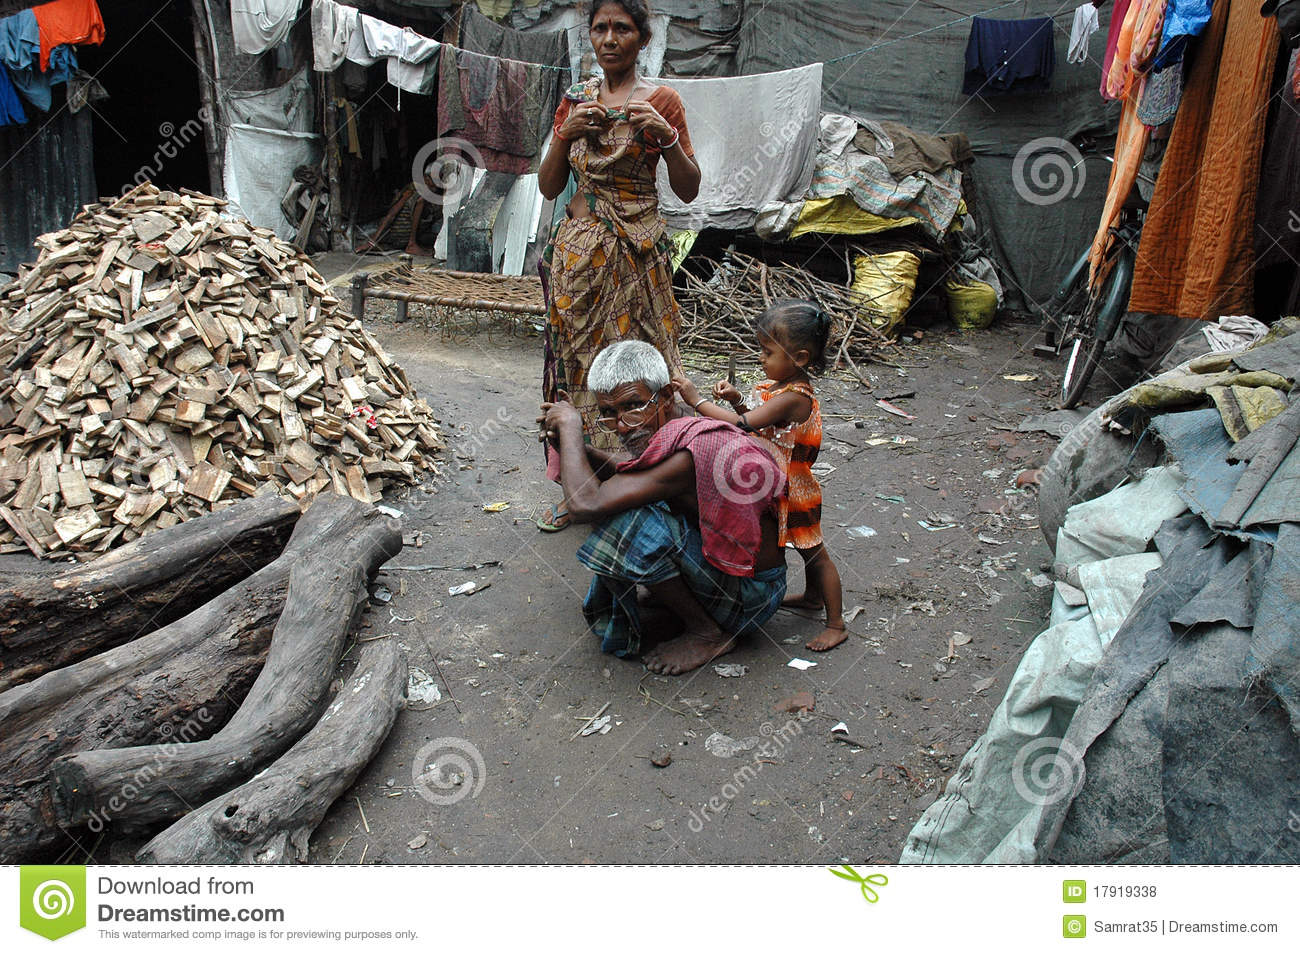 the issue of slums and poverty But this is also the region with the greatest concentration of poverty the equator initiative addresses many of the issues most fundamental to global sustainable.